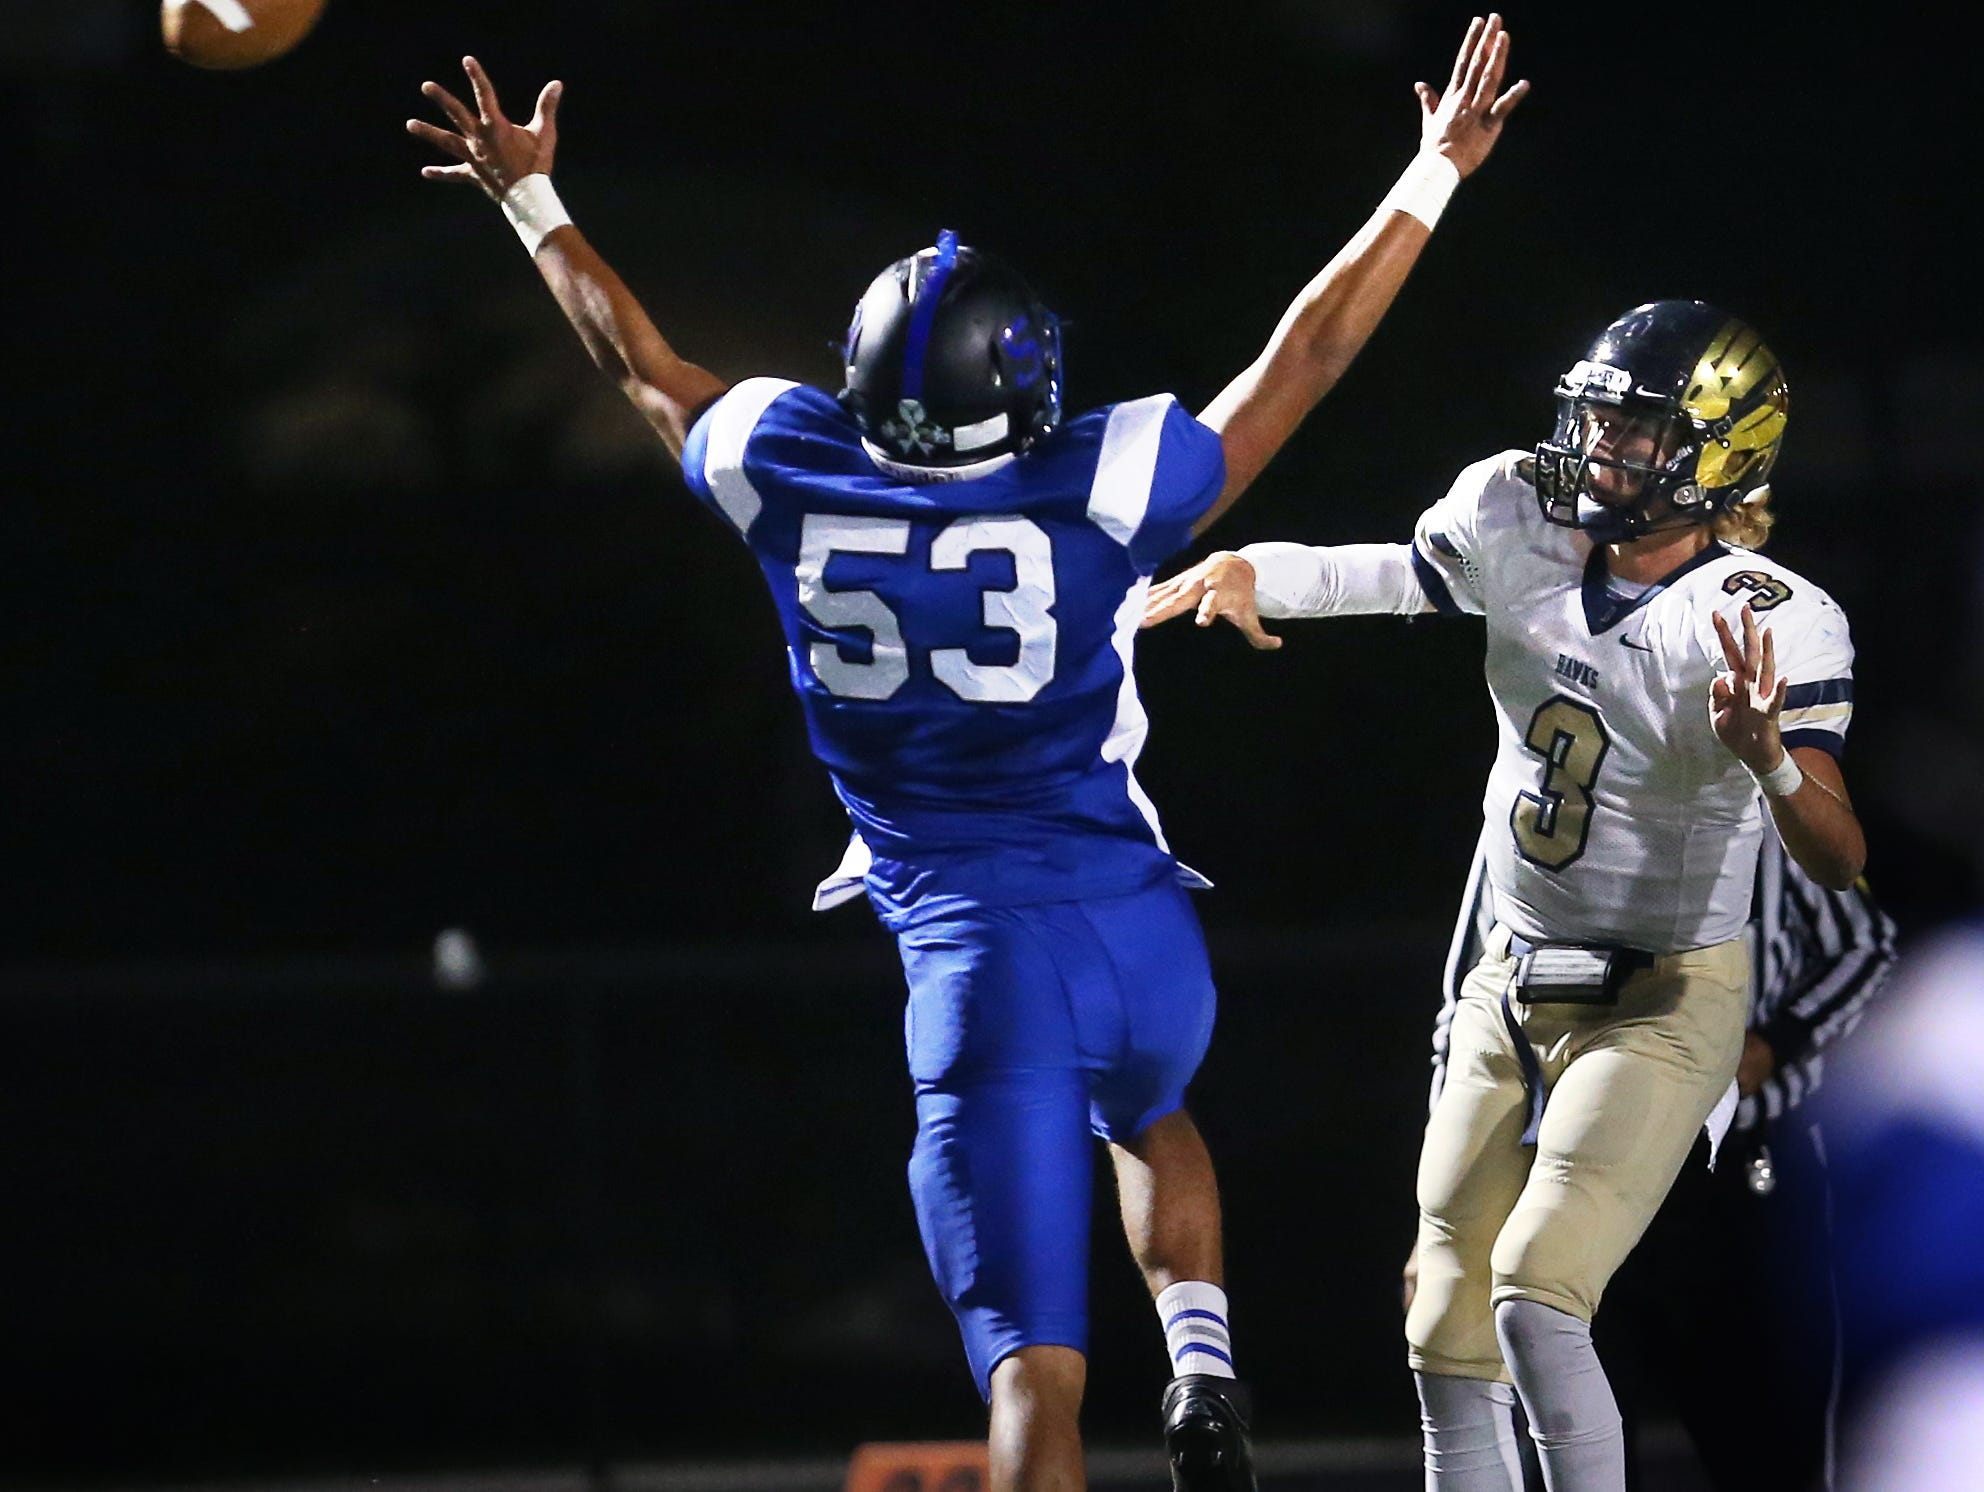 Decatur Central High School quarterback Tommy Stevens throws one of his passes on his 65-yard come-from-behind game-winning drive despite a valiant defensive effort from Franklin Grizzly Cub defender Tyler Hendricks at Franklin on Friday, October 17, 2014. The Hawks scored with 15.7 seconds left and came away with a hard-earned 27-23 victory over the Grizzly Cubs. (This was not the touchdown pass).